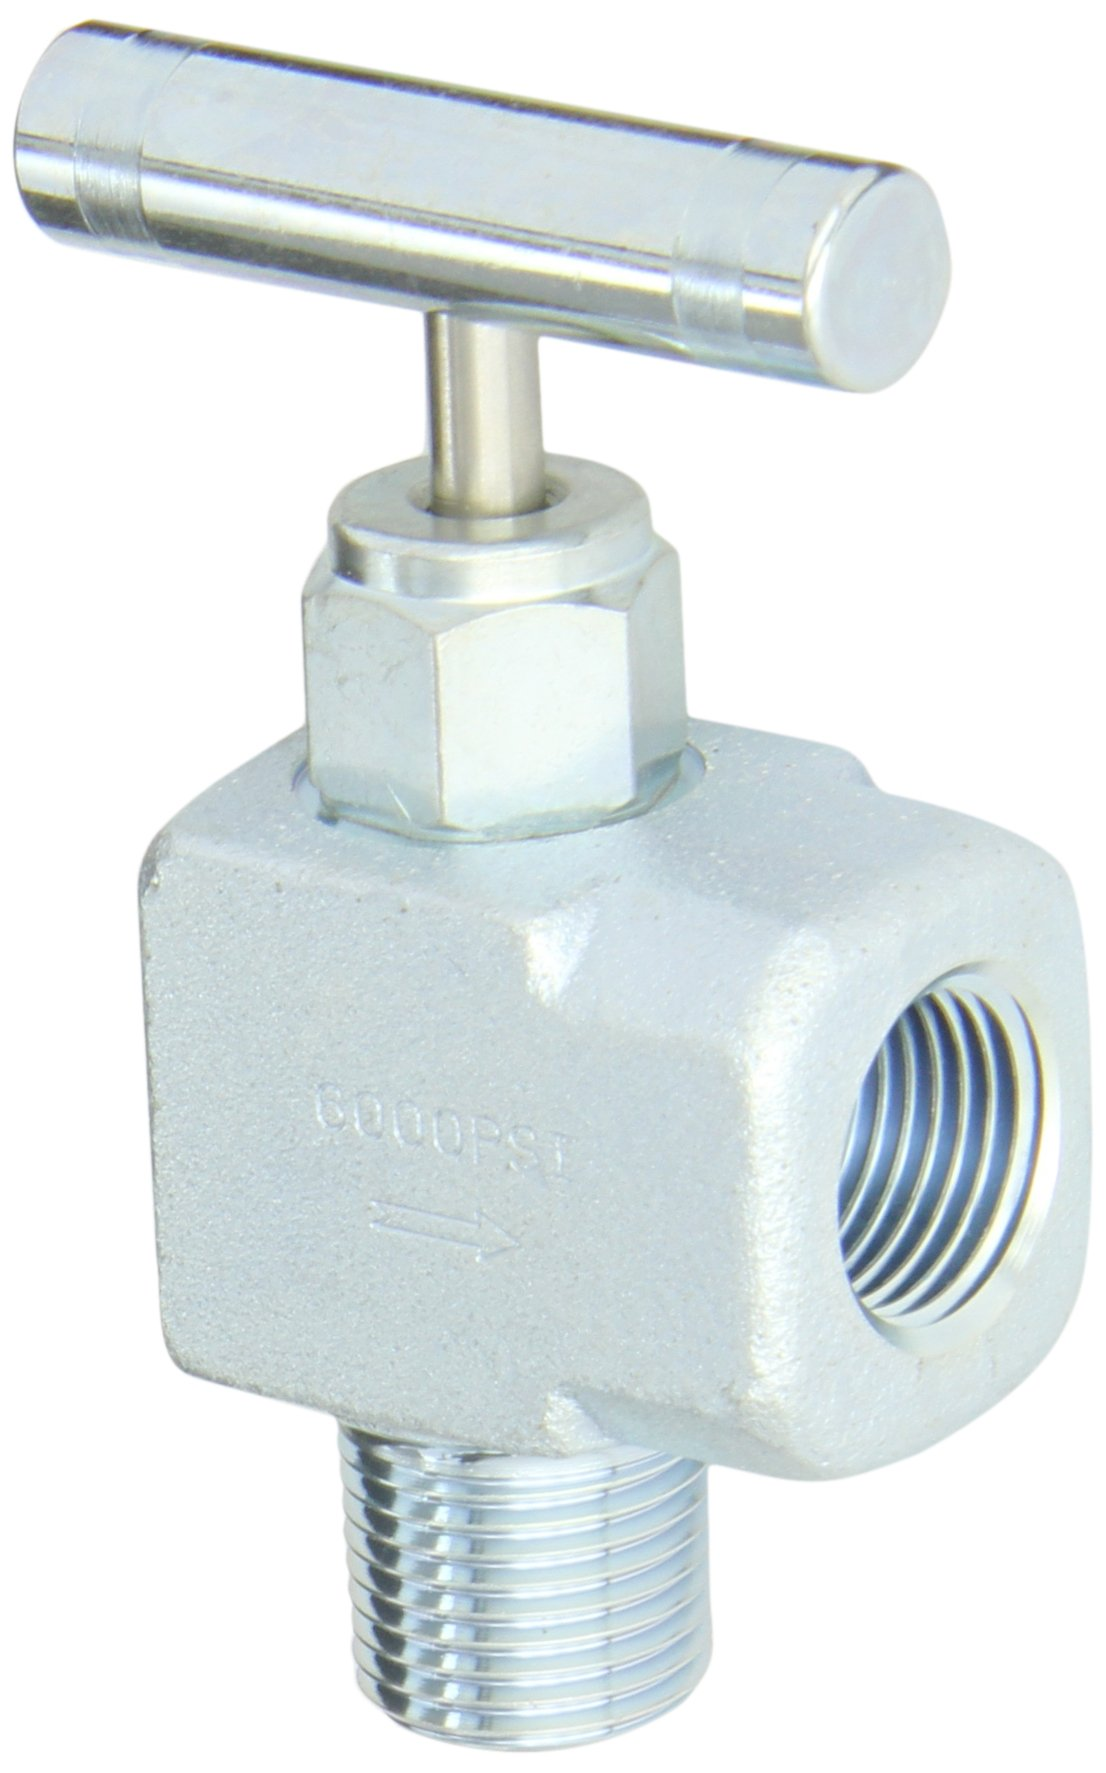 PIC Gauge NV-CS-1/2-GS-90-MXF Carbon Steel 90° Angle Needle Valve with Gas Service Seat, 1/2'' Male NPT x 1/2'' Female NPT Connection Size, 6000 psi Pressure